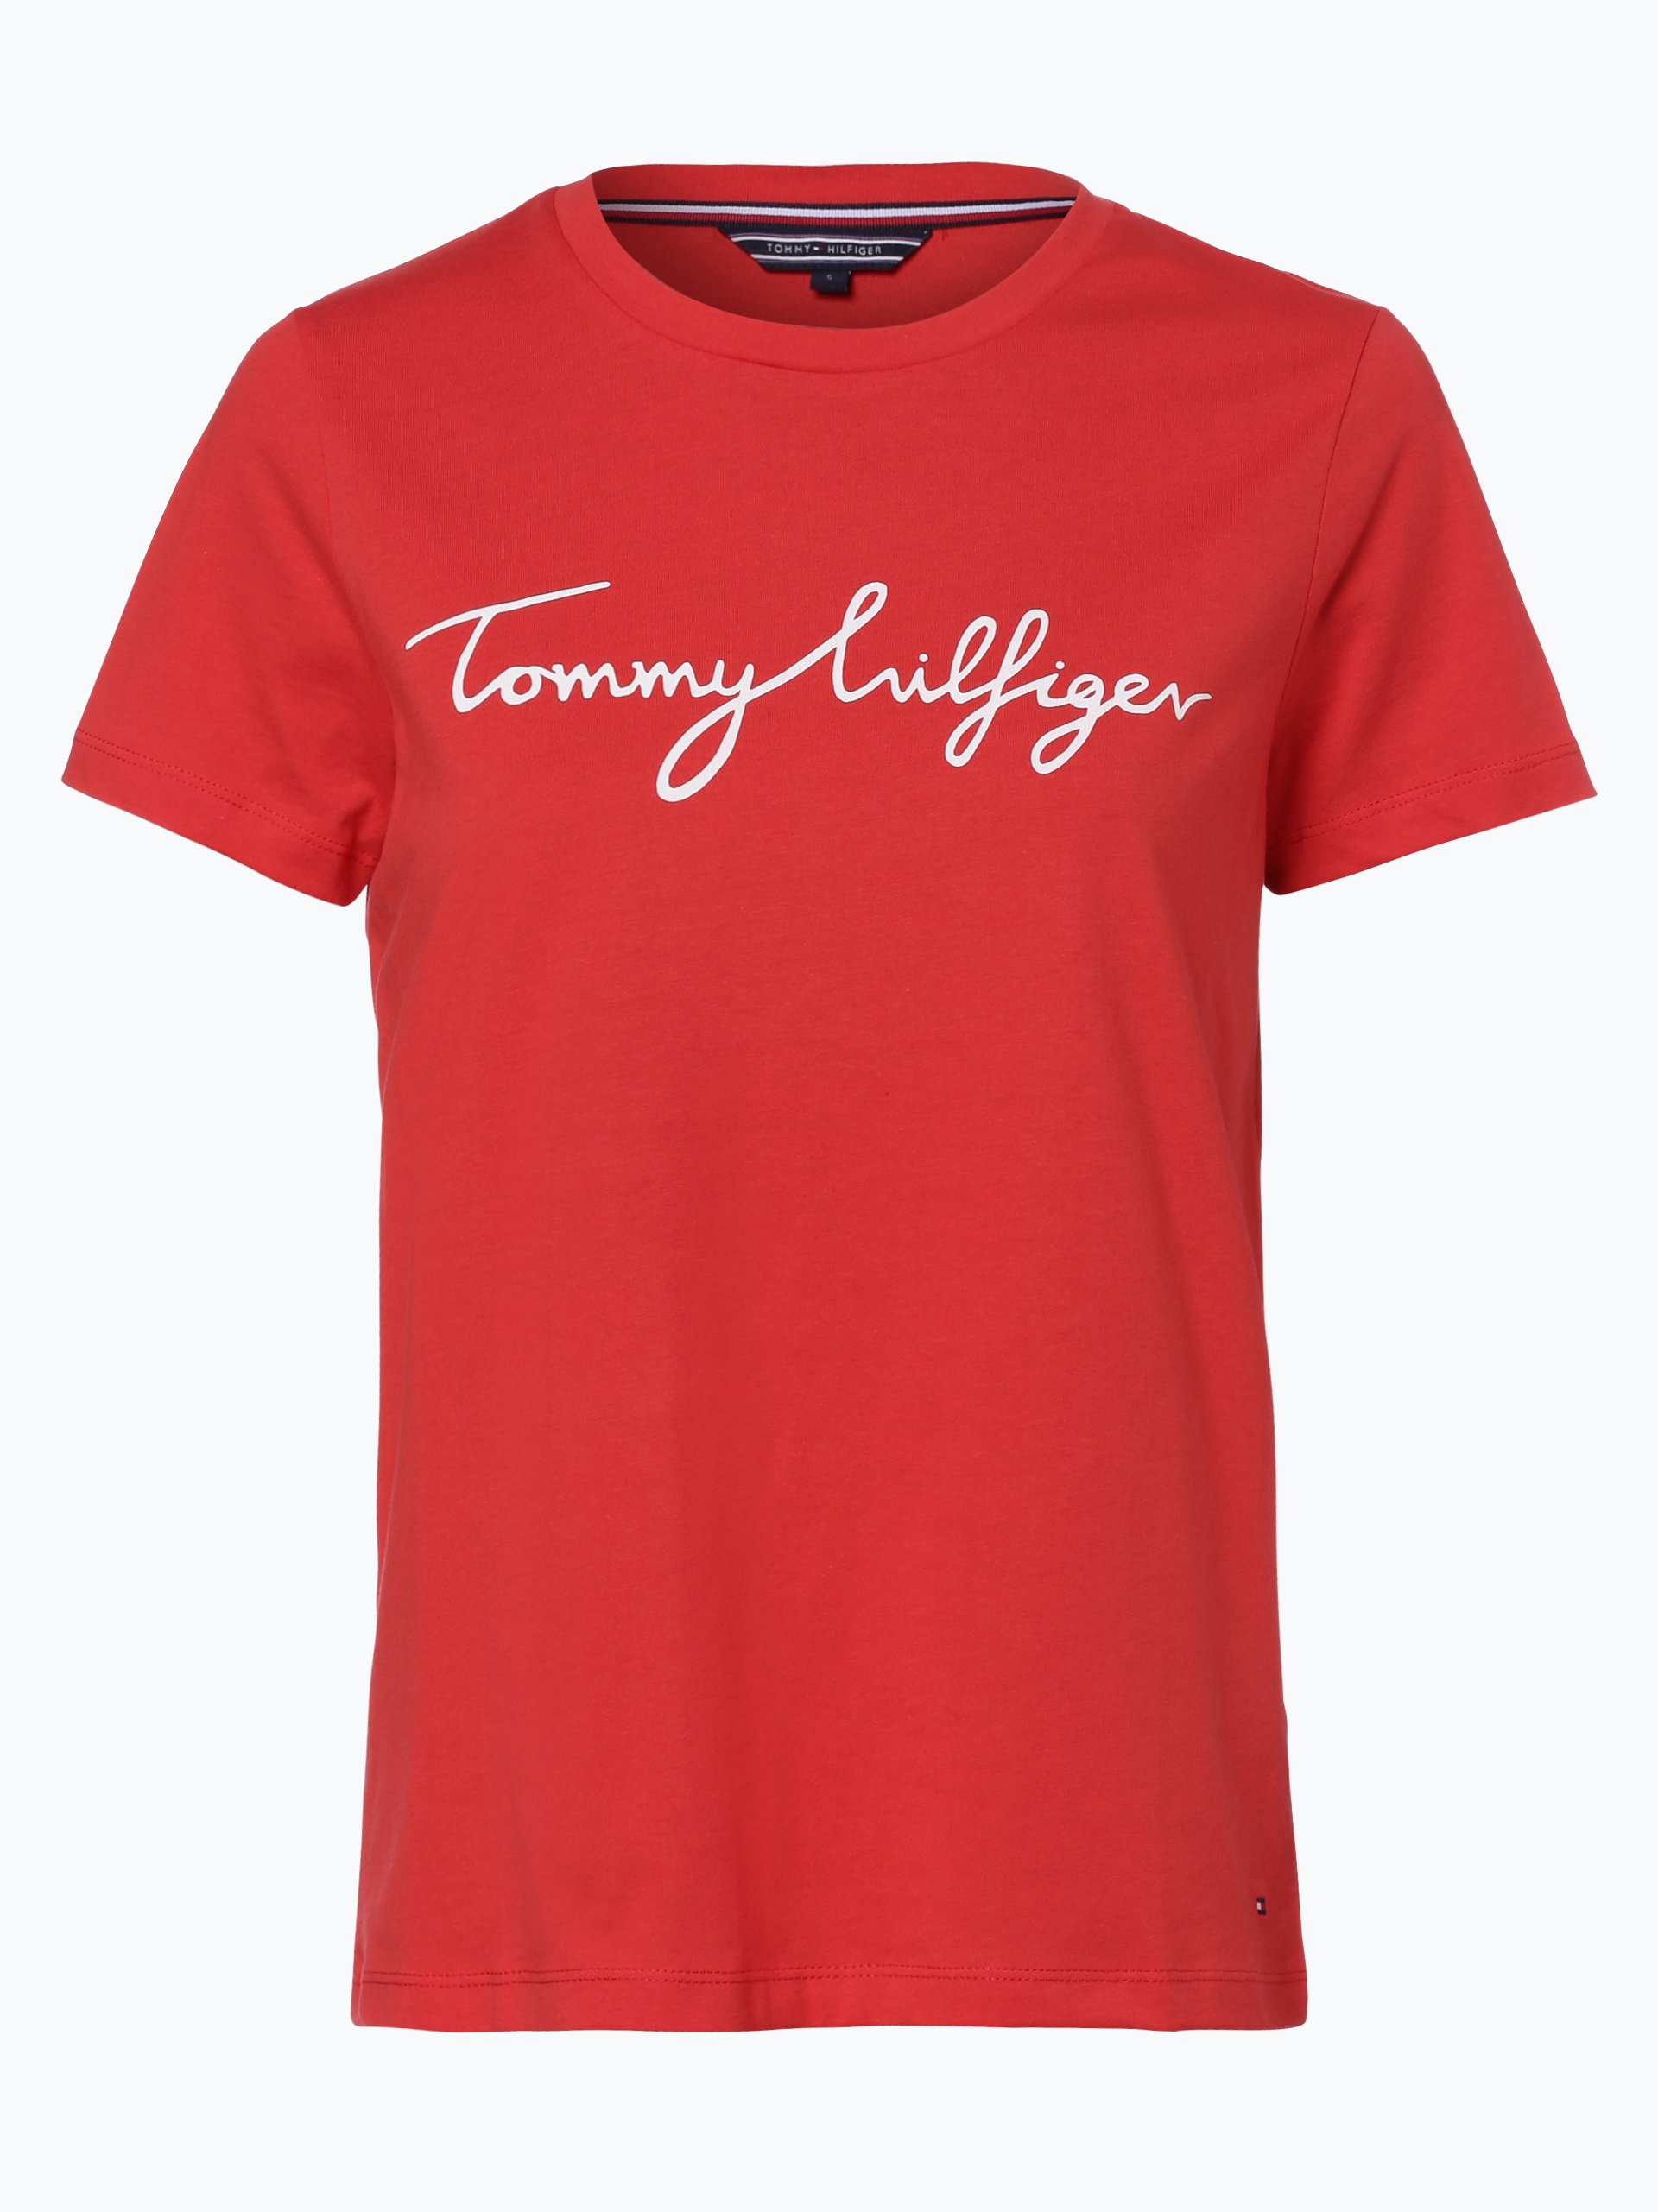 tommy hilfiger damen t shirt rot bedruckt online kaufen peek und cloppenburg de. Black Bedroom Furniture Sets. Home Design Ideas